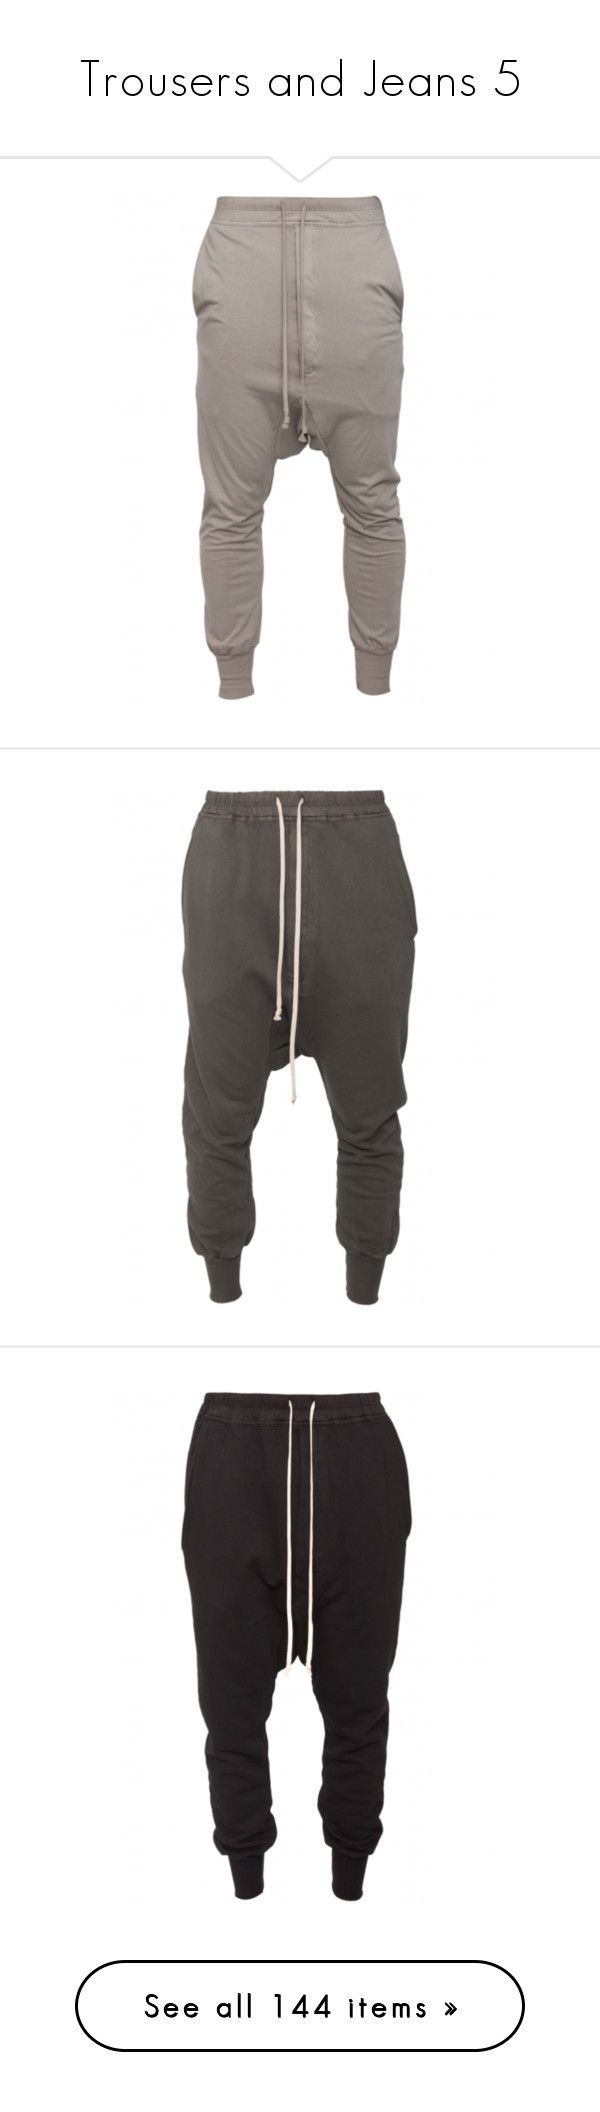 """""""Trousers and Jeans 5"""" by efiaeemnxo ❤ liked on Polyvore featuring pants, bottoms, jeans, sweatpants, men, josh bottoms, pantalones, drkshdw, low crotch pants and drop crotch pants"""